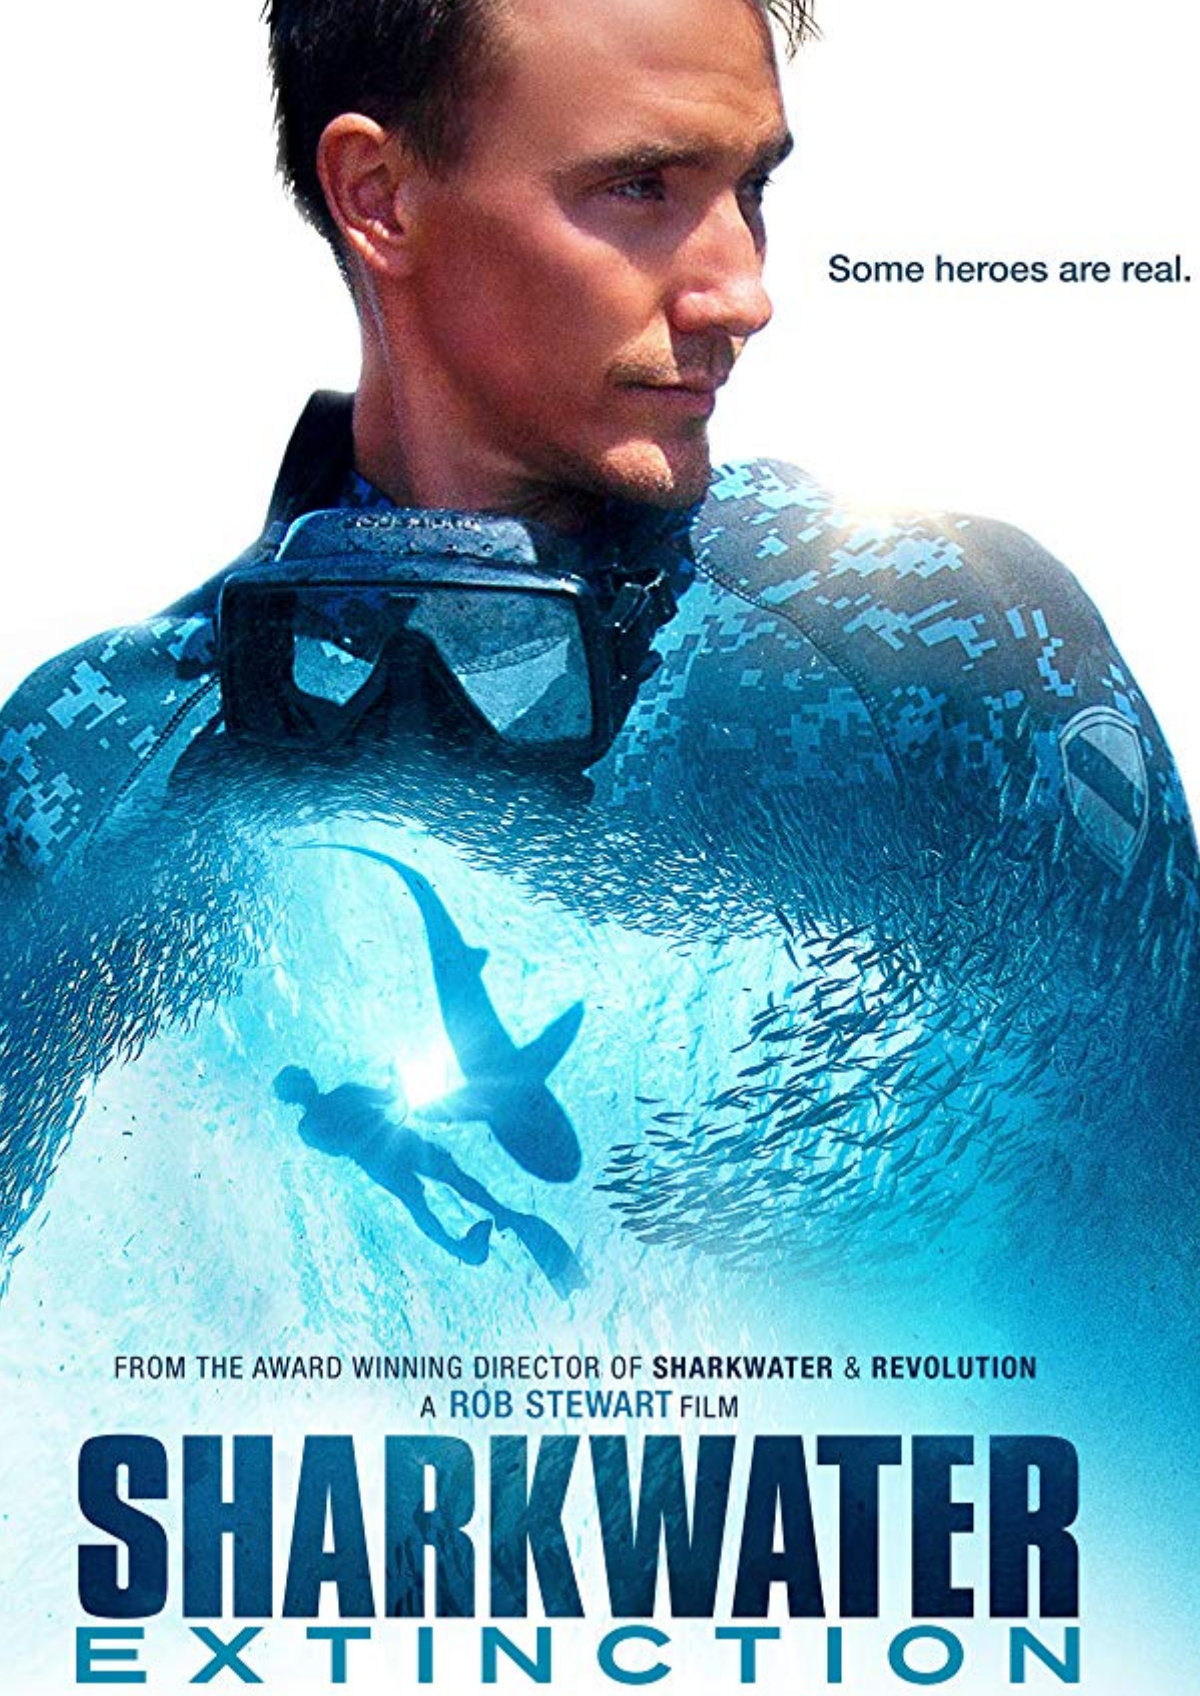 'Sharkwater Extinction' movie poster